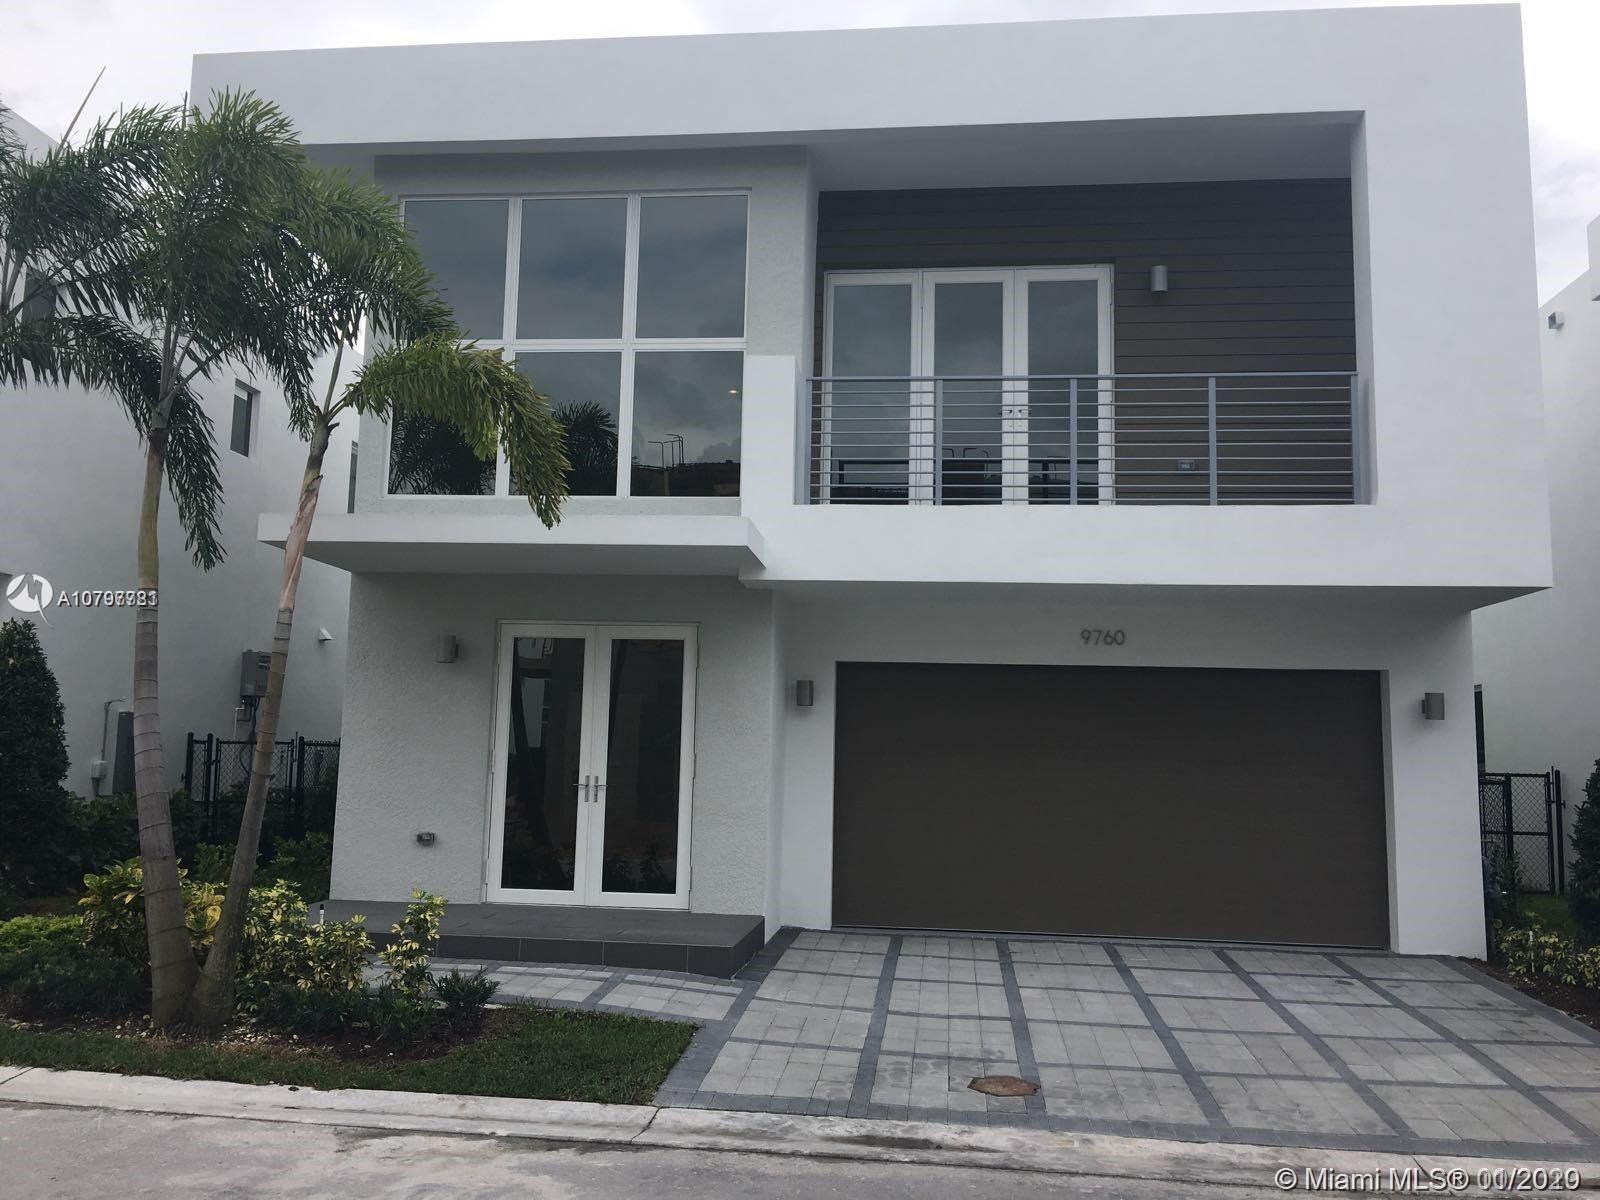 SPECTACULAR SINGLE-FAMILY HOME LOCATED IN AN EXQUISITE PRIVATE COMMUNITY IN DORAL. 4 BEDROOMS, 4 BAT